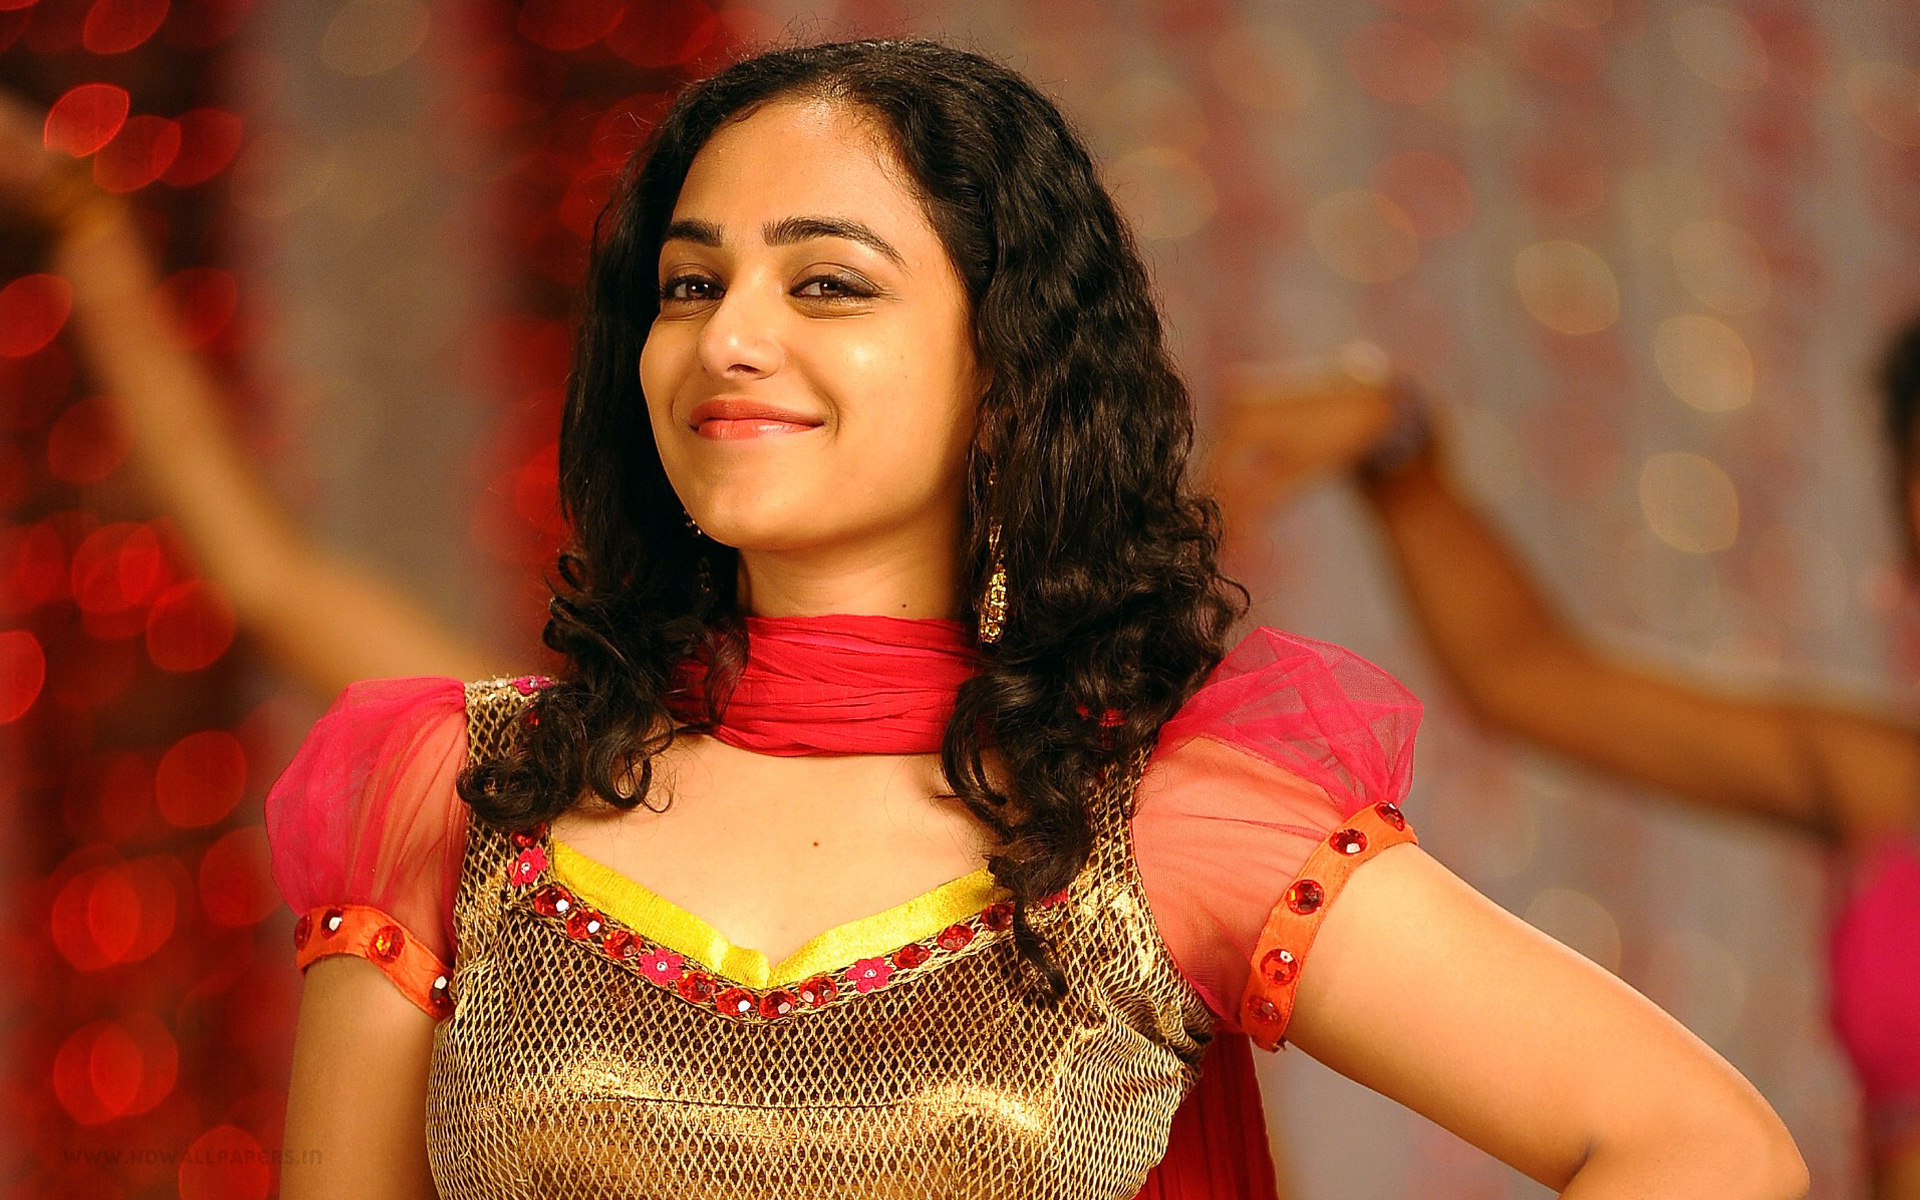 nithya menon full hd wallpaper and background image | 1920x1200 | id